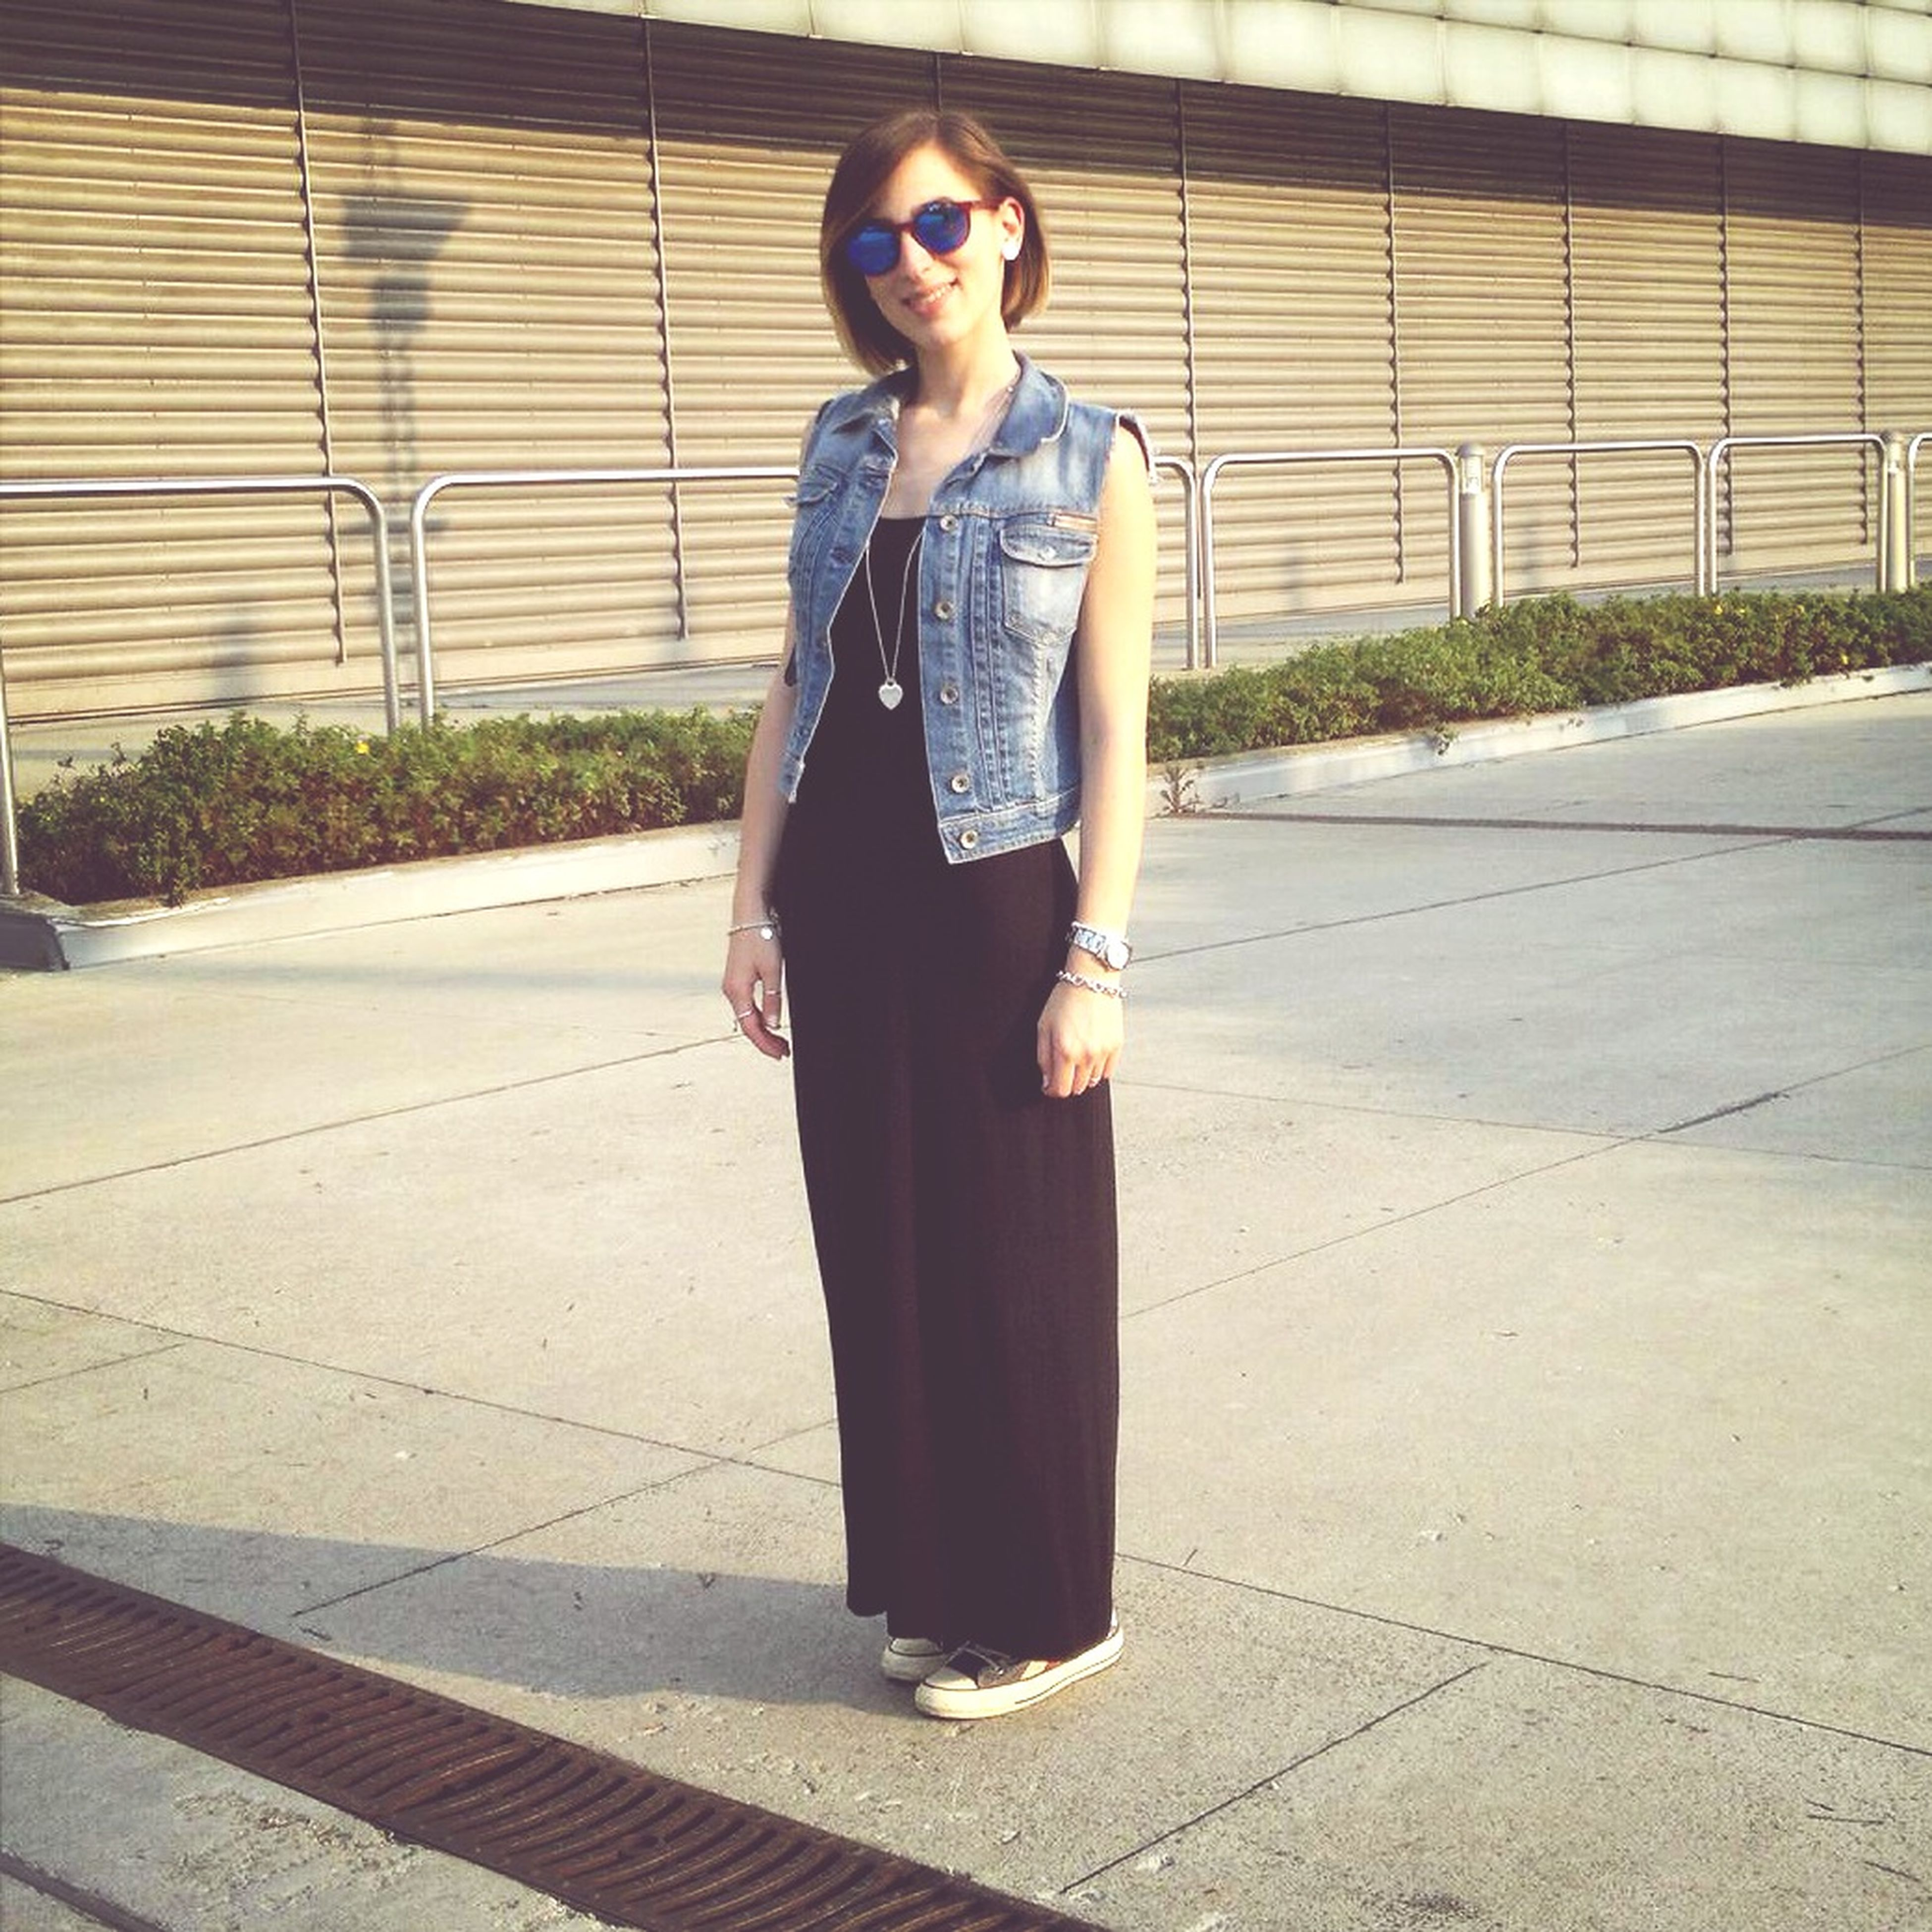 young adult, person, front view, casual clothing, young women, standing, looking at camera, portrait, lifestyles, full length, leisure activity, fashion, fashionable, smiling, sunglasses, confidence, brick wall